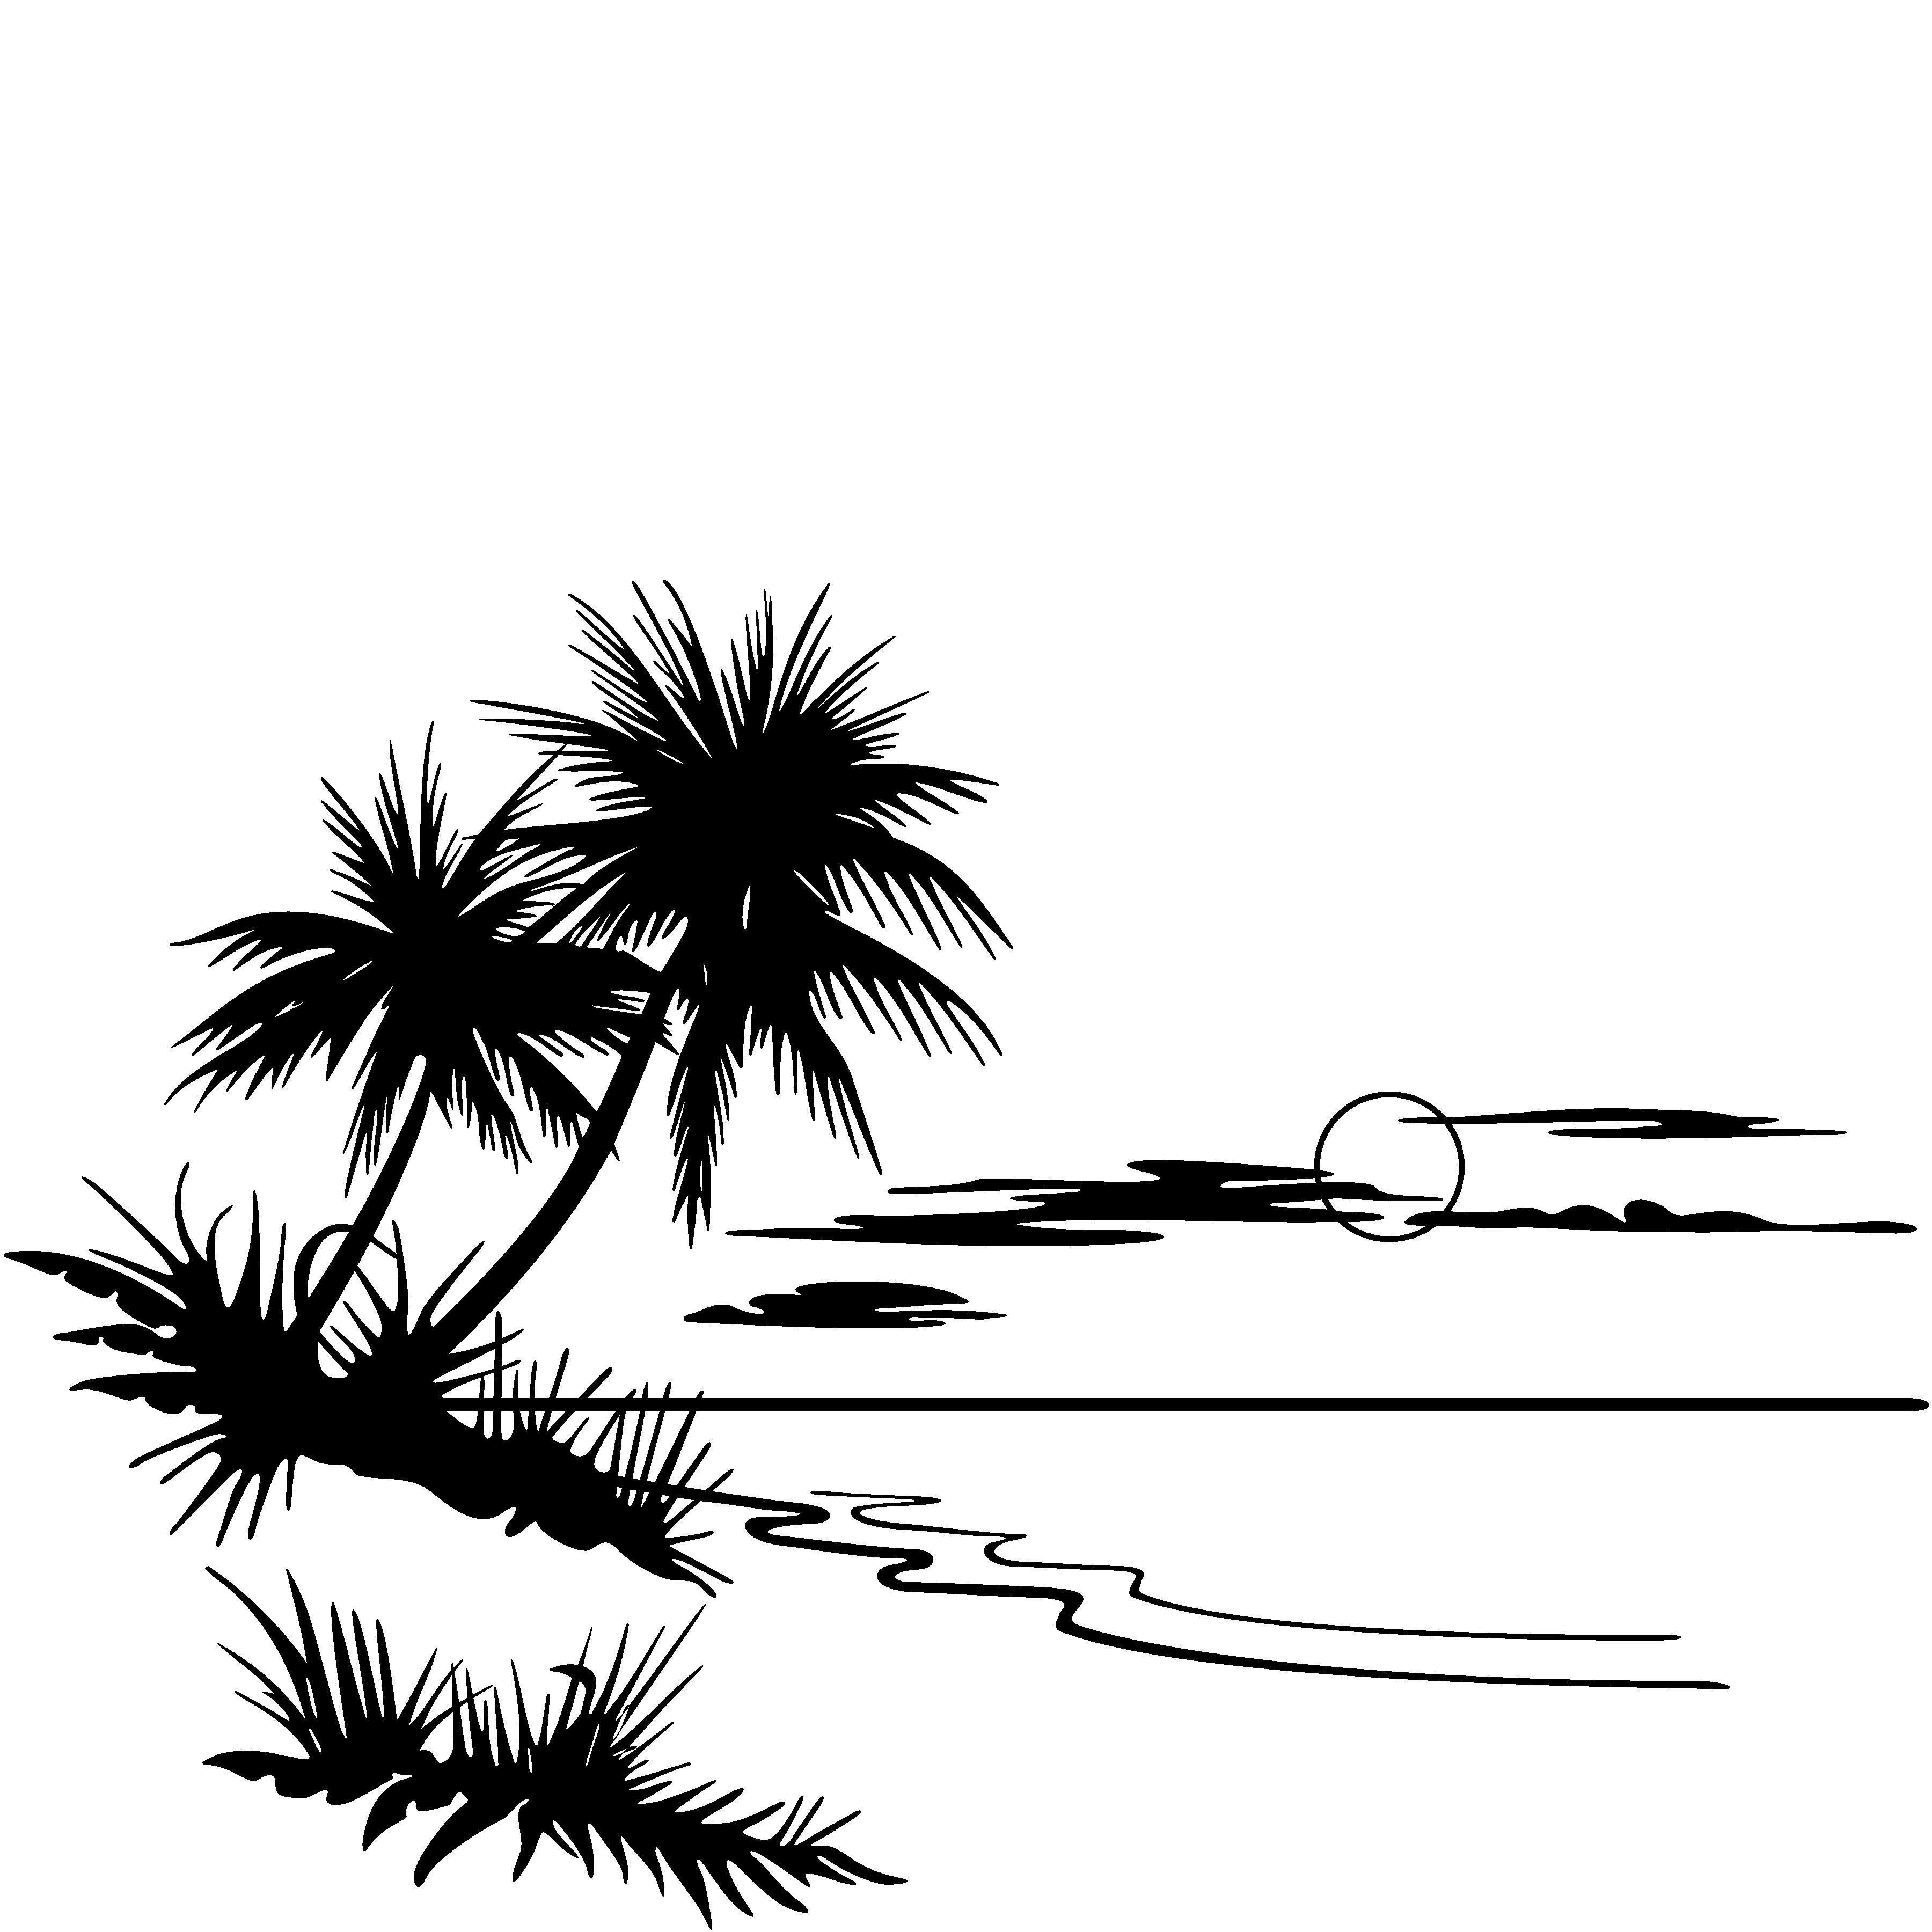 coloring beach clipart black and white sand castle coloring pages getcoloringpagescom beach clipart white and black coloring